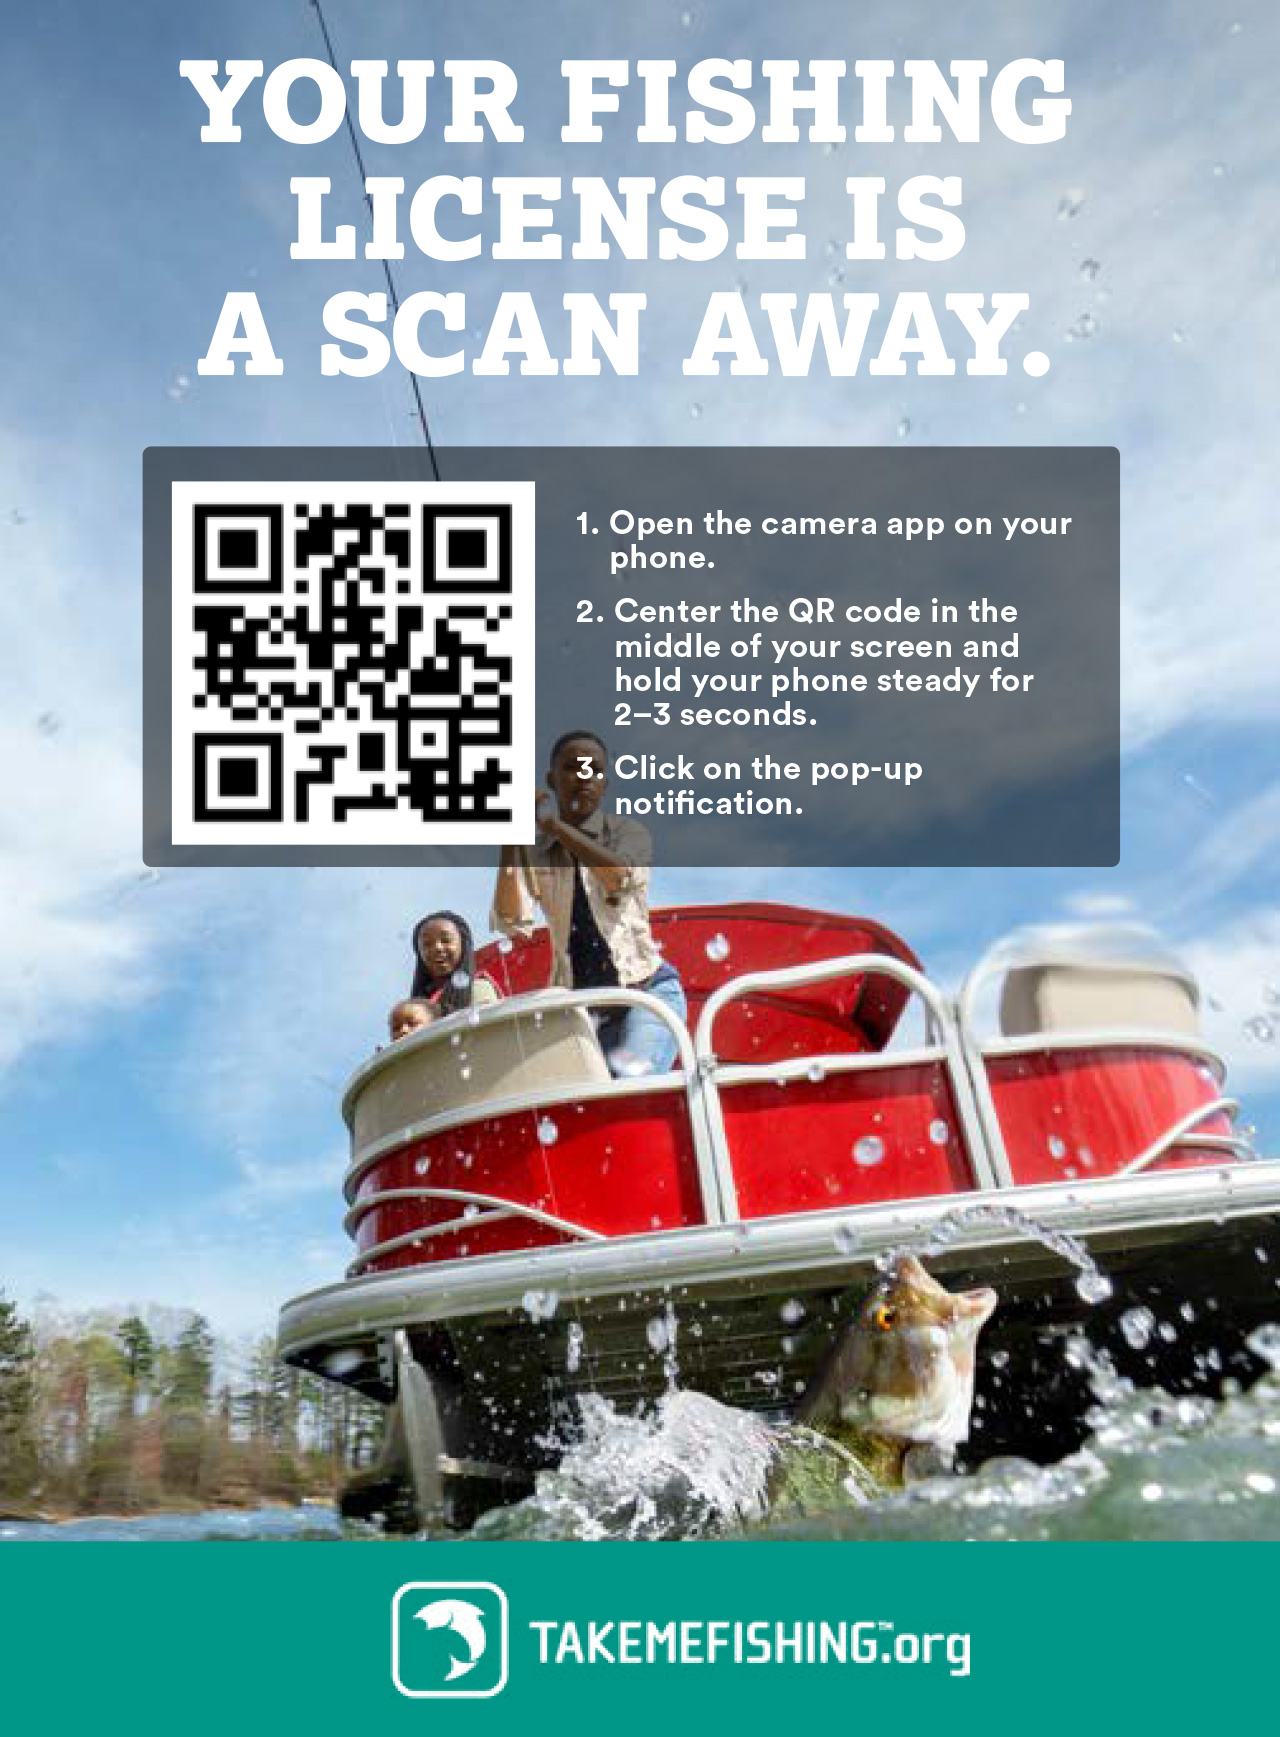 Get your fishing license online with this QR code.